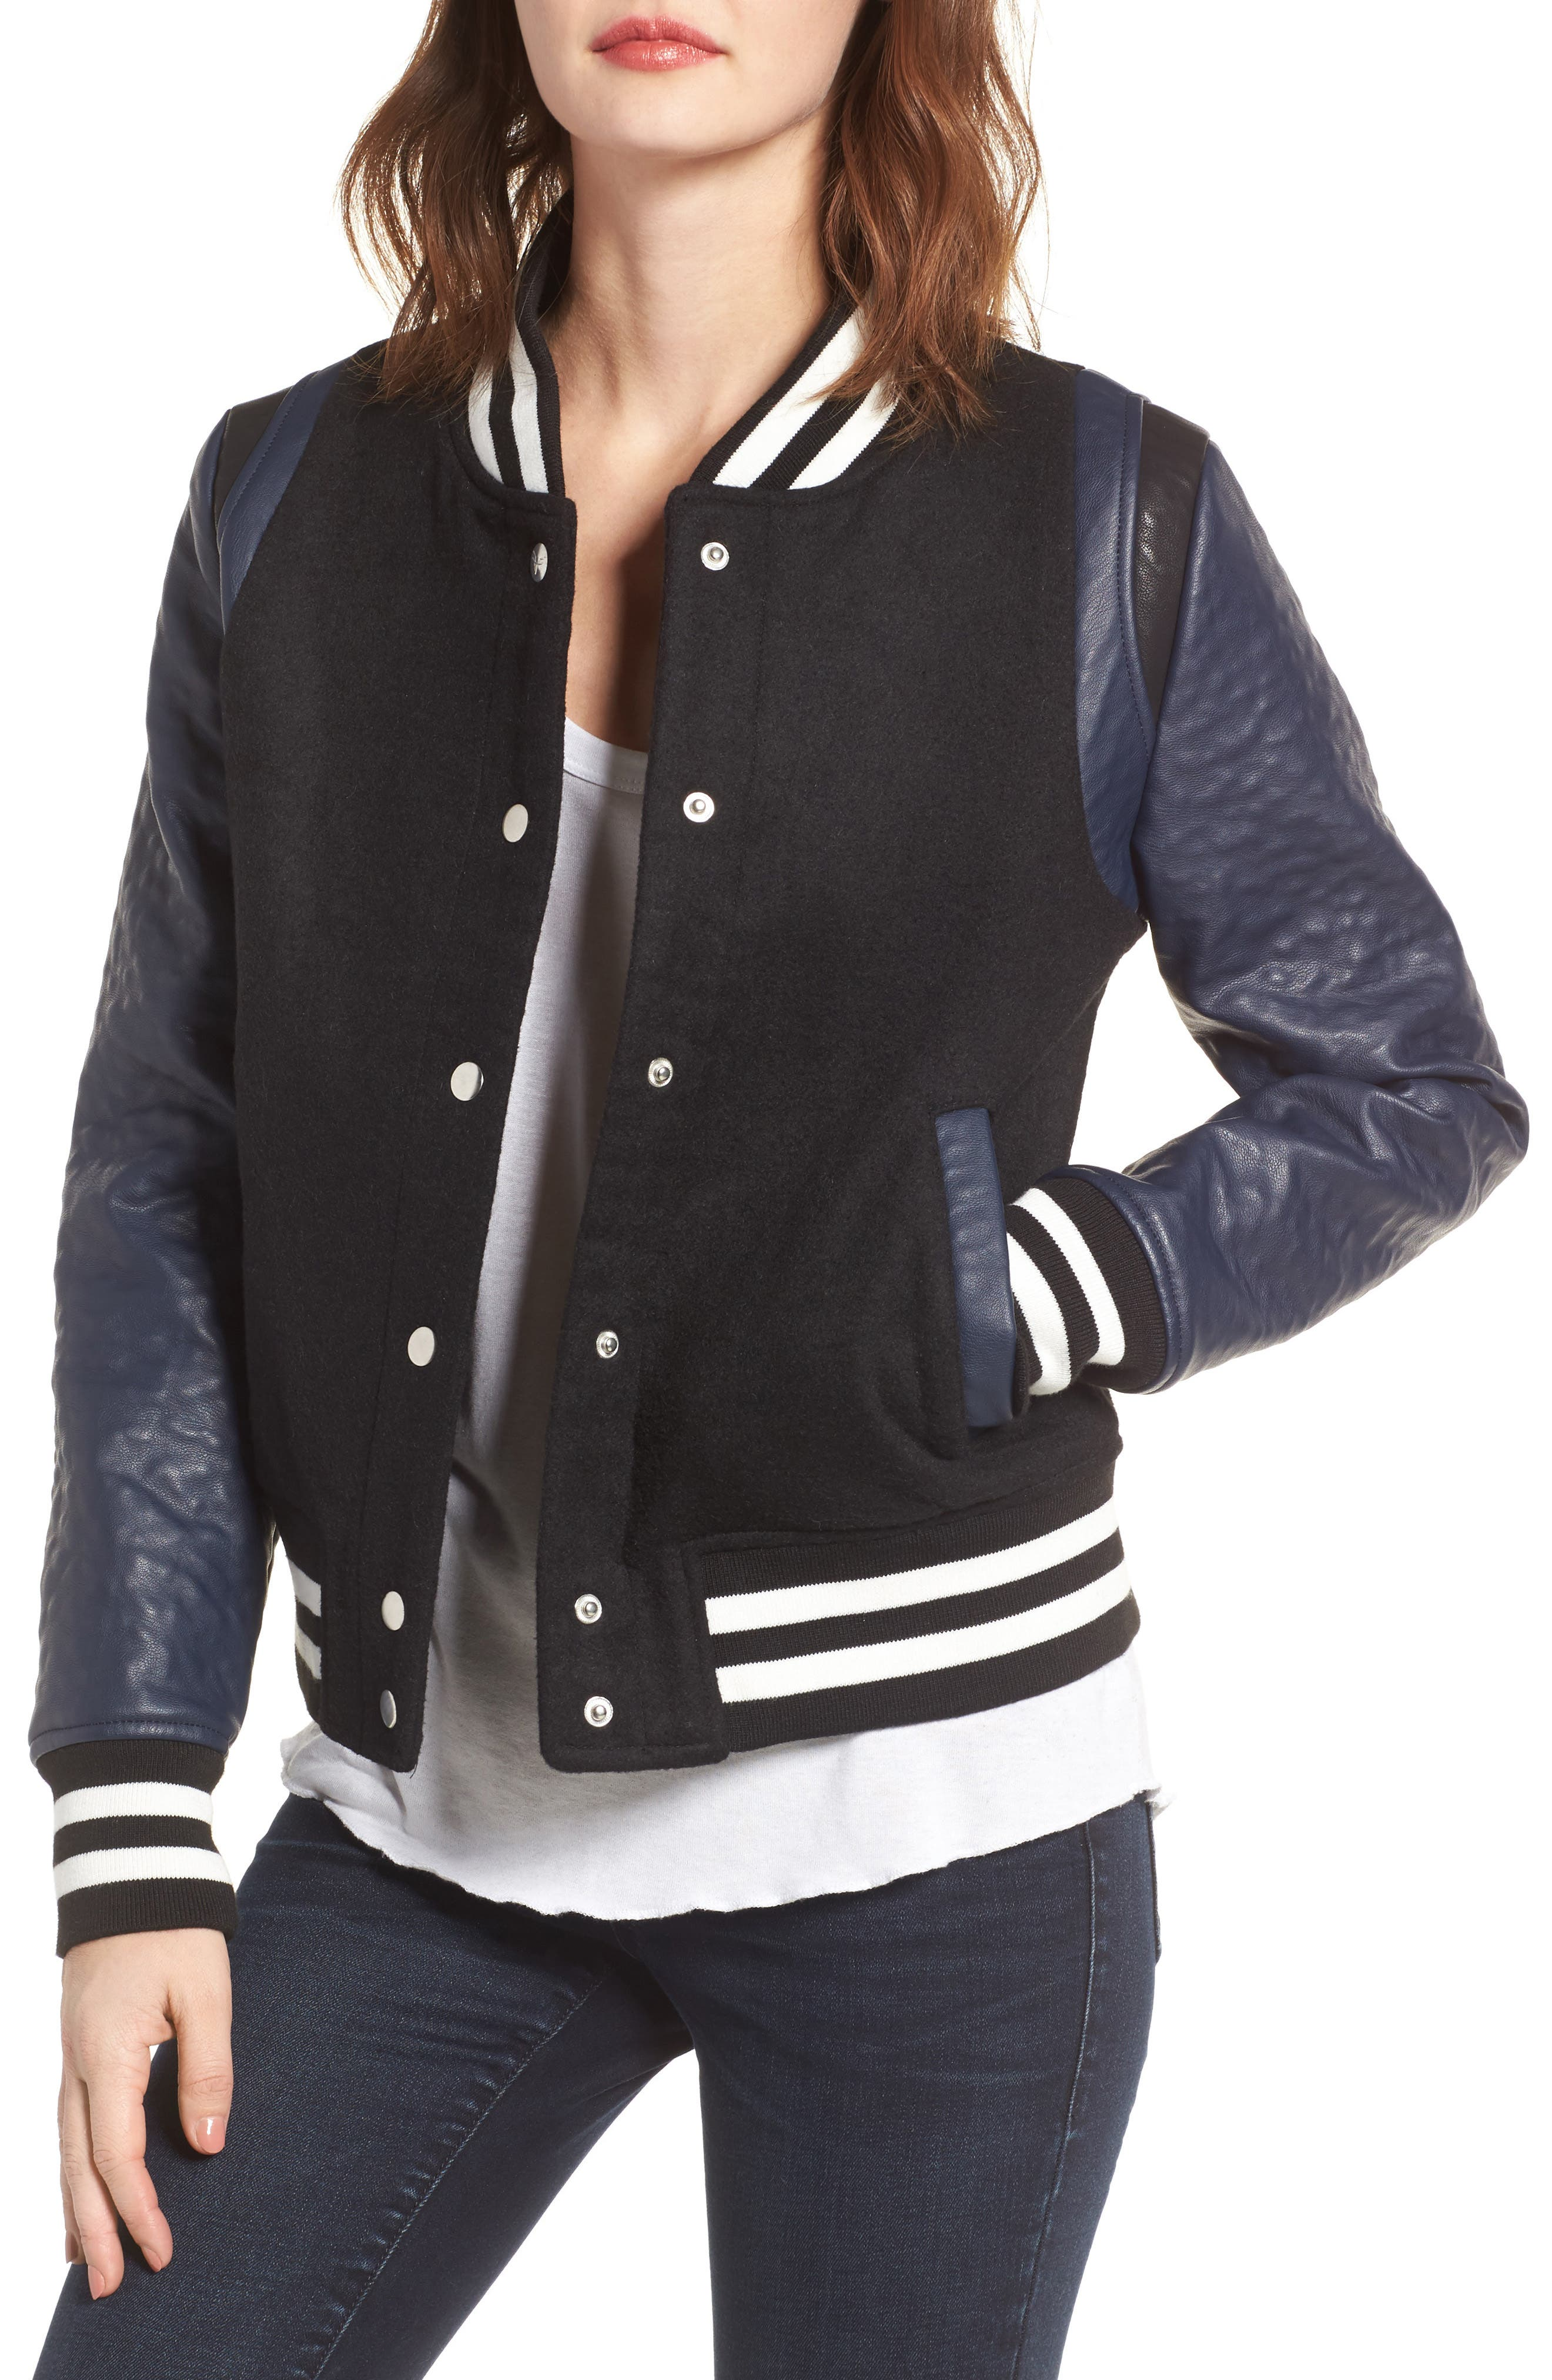 Main Image - Vigoss Wool & Faux Leather Baseball Jacket